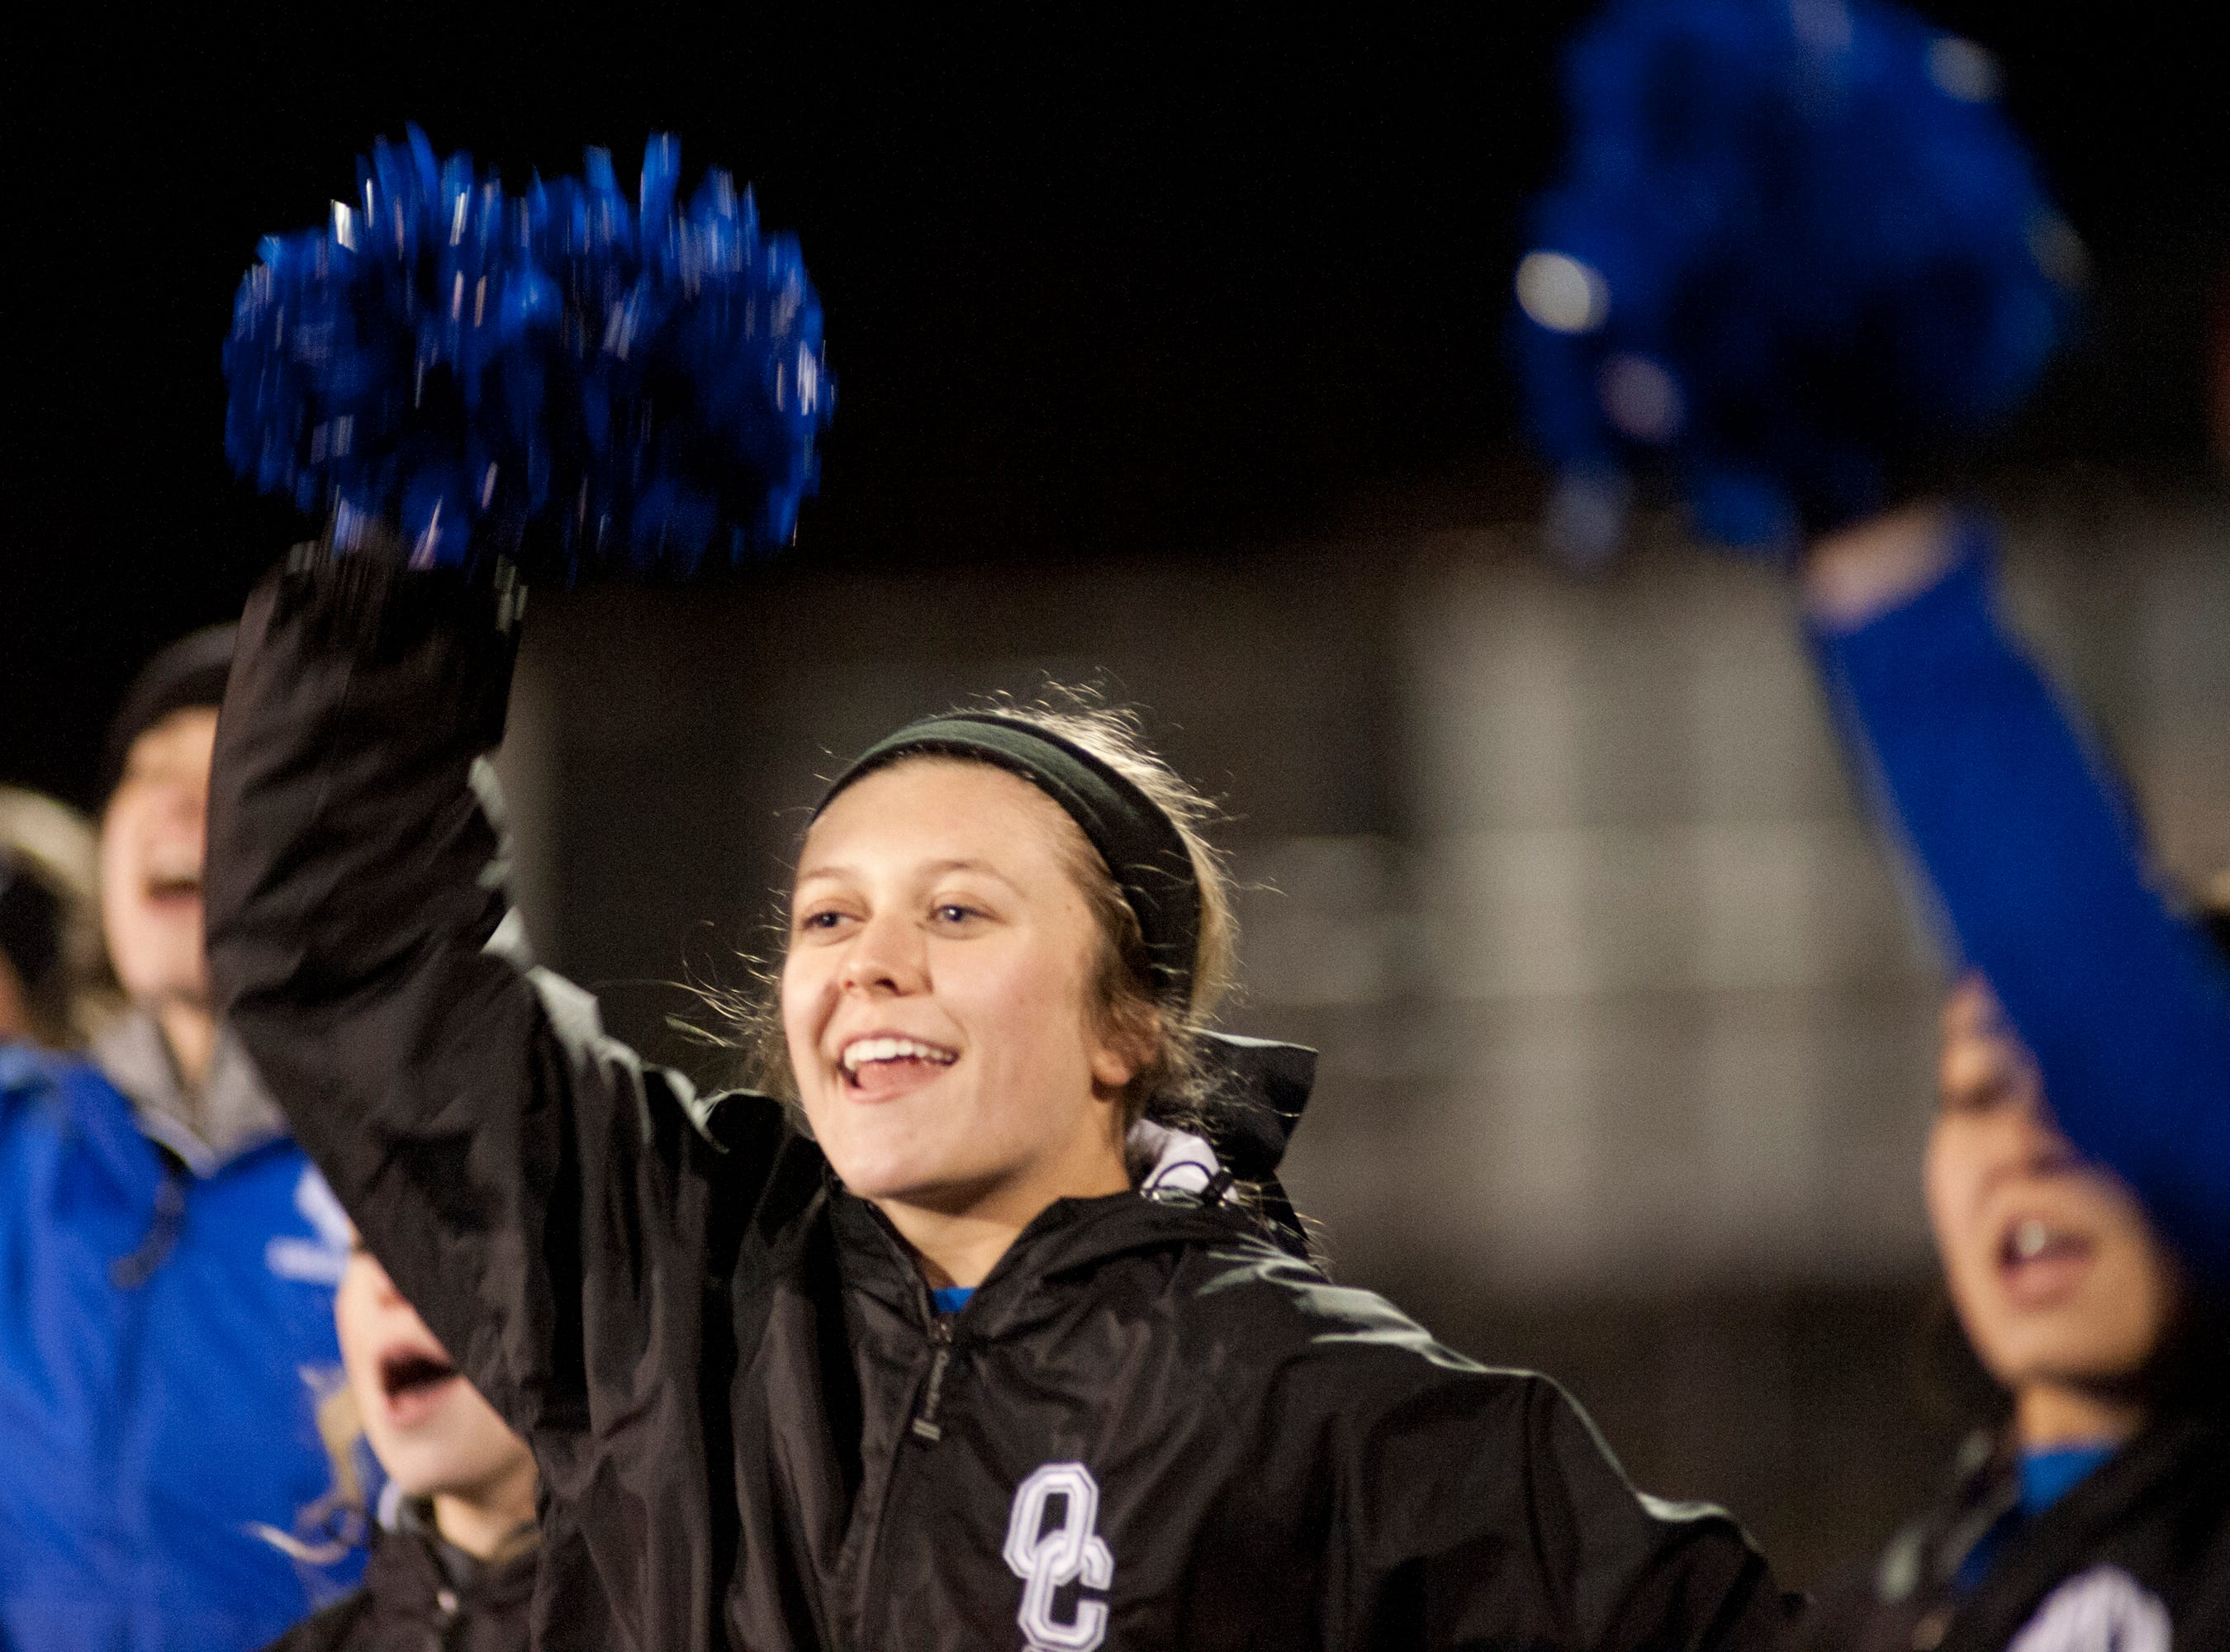 An Oldham County cheerleader roots for her team. Nov. 9, 2018